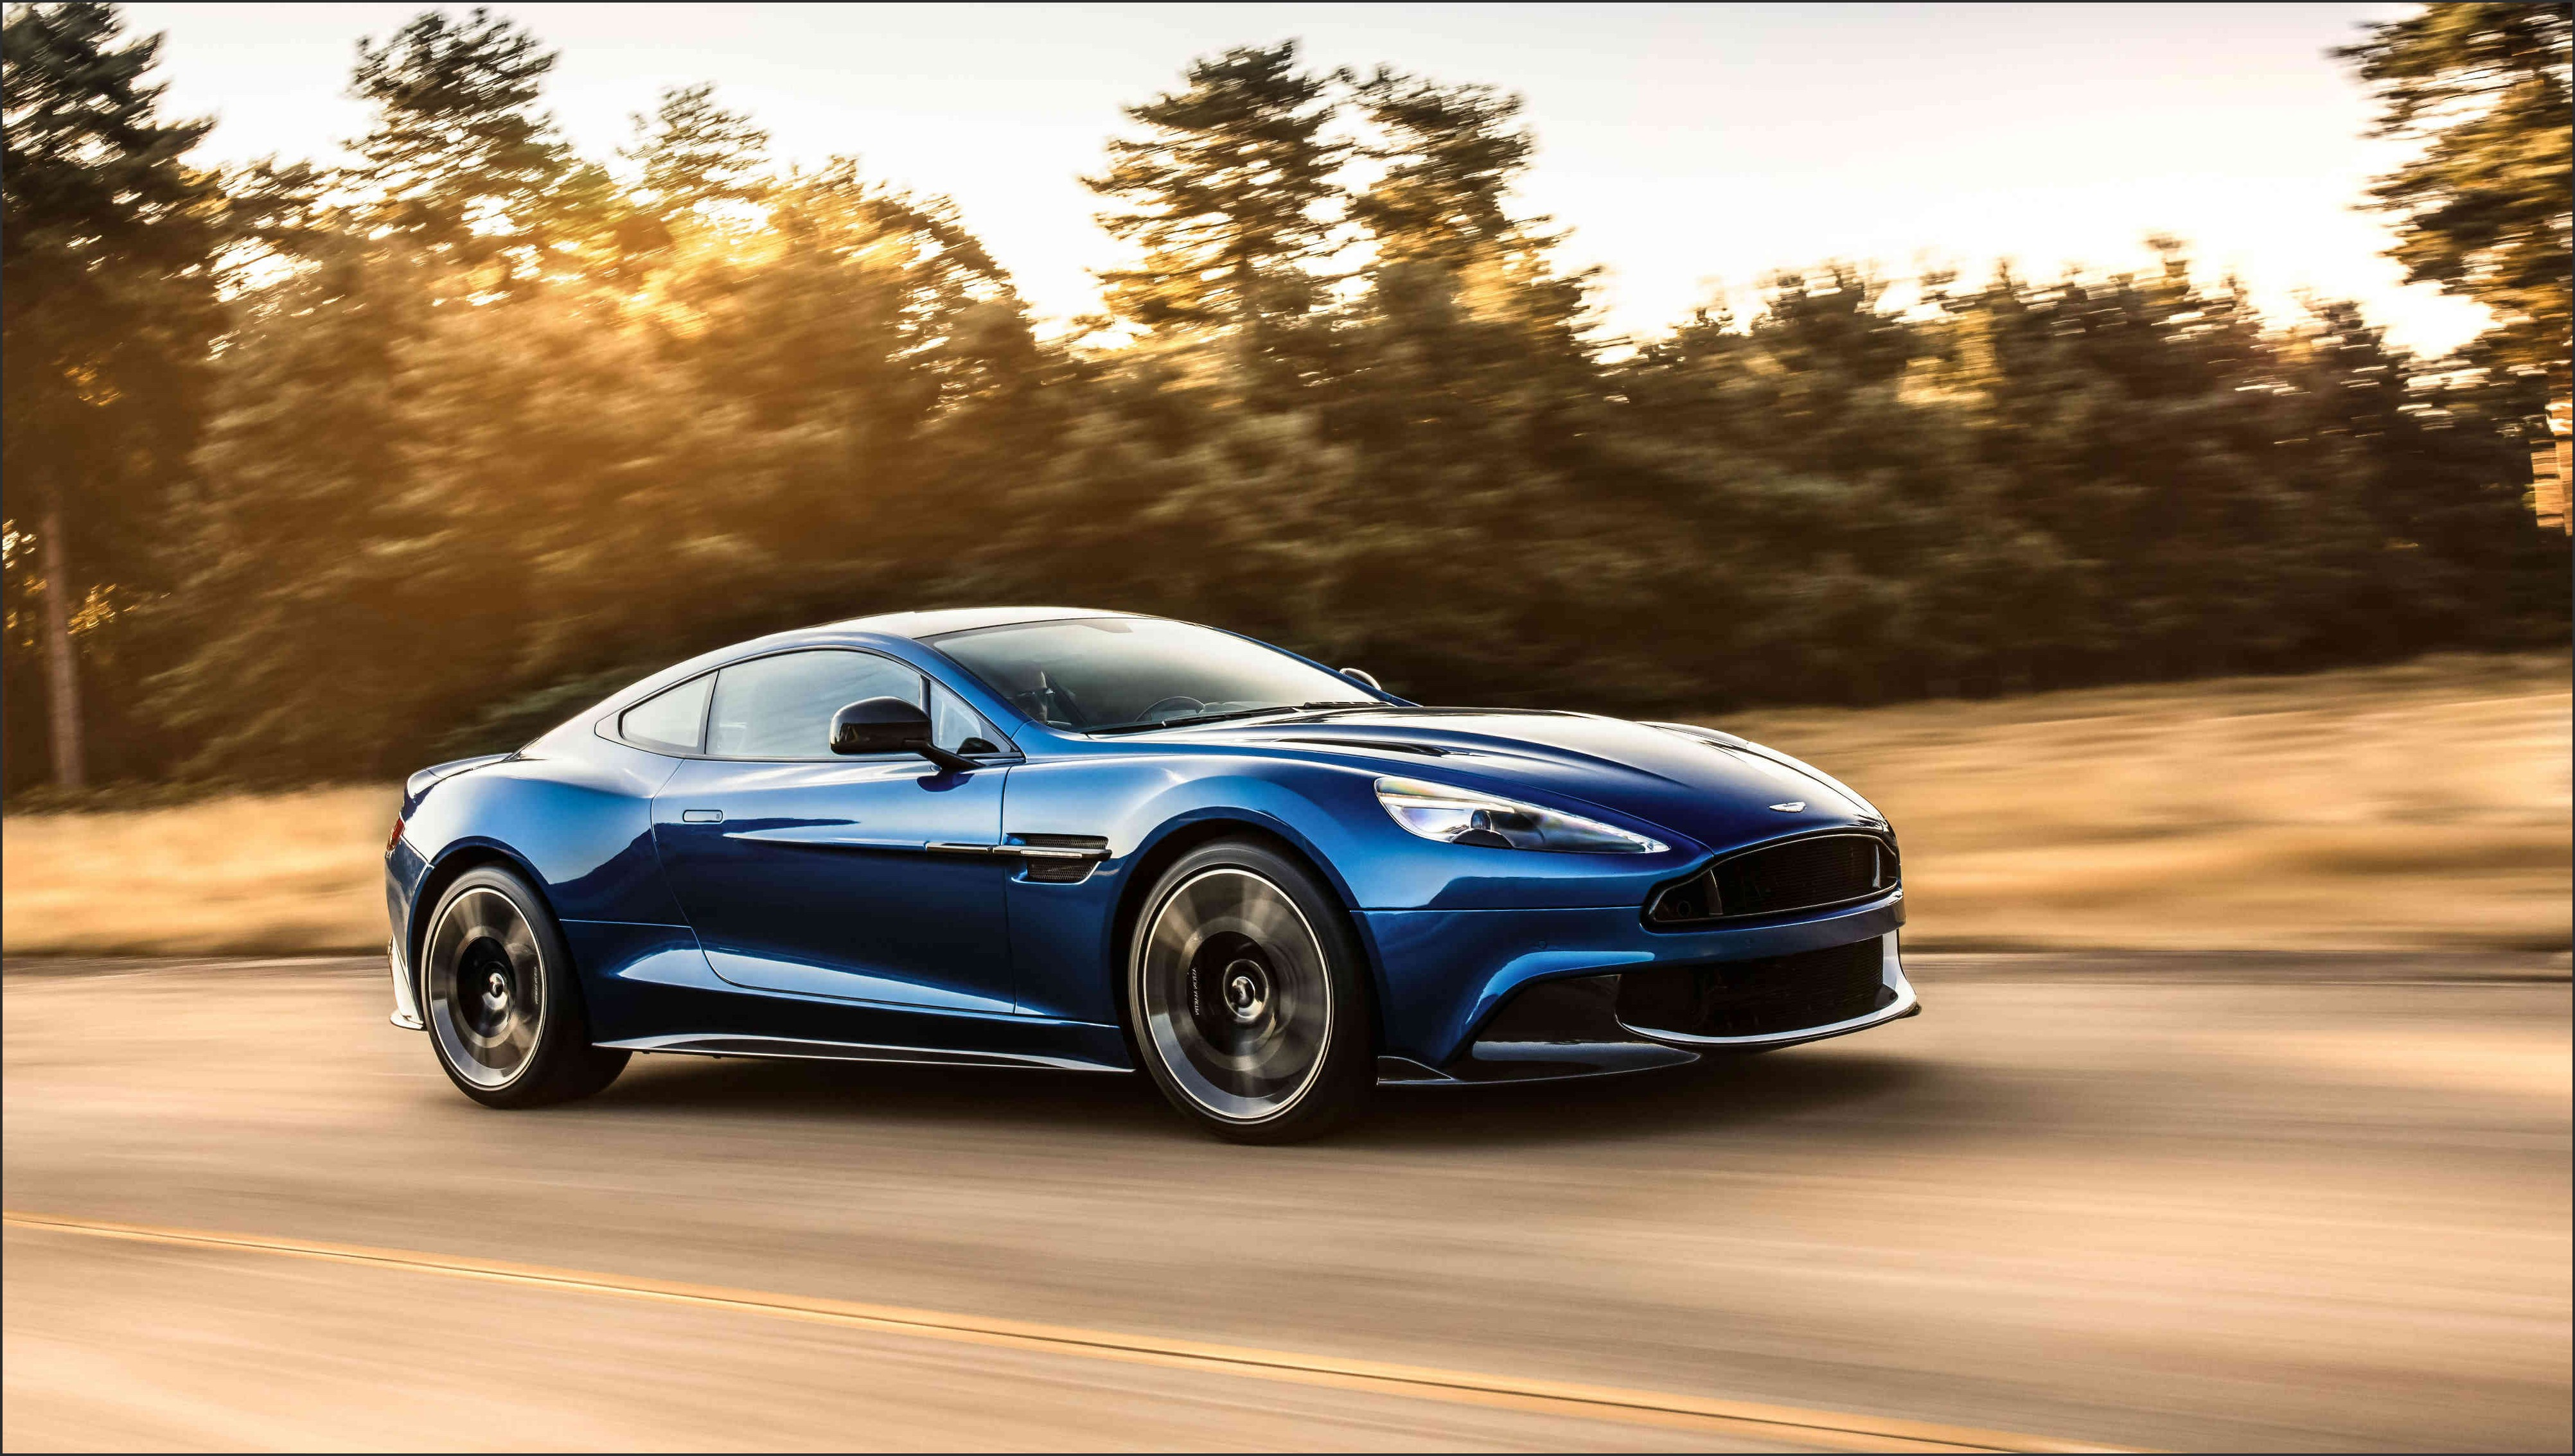 2019 Aston Martin DBX SUV Price and Release Date